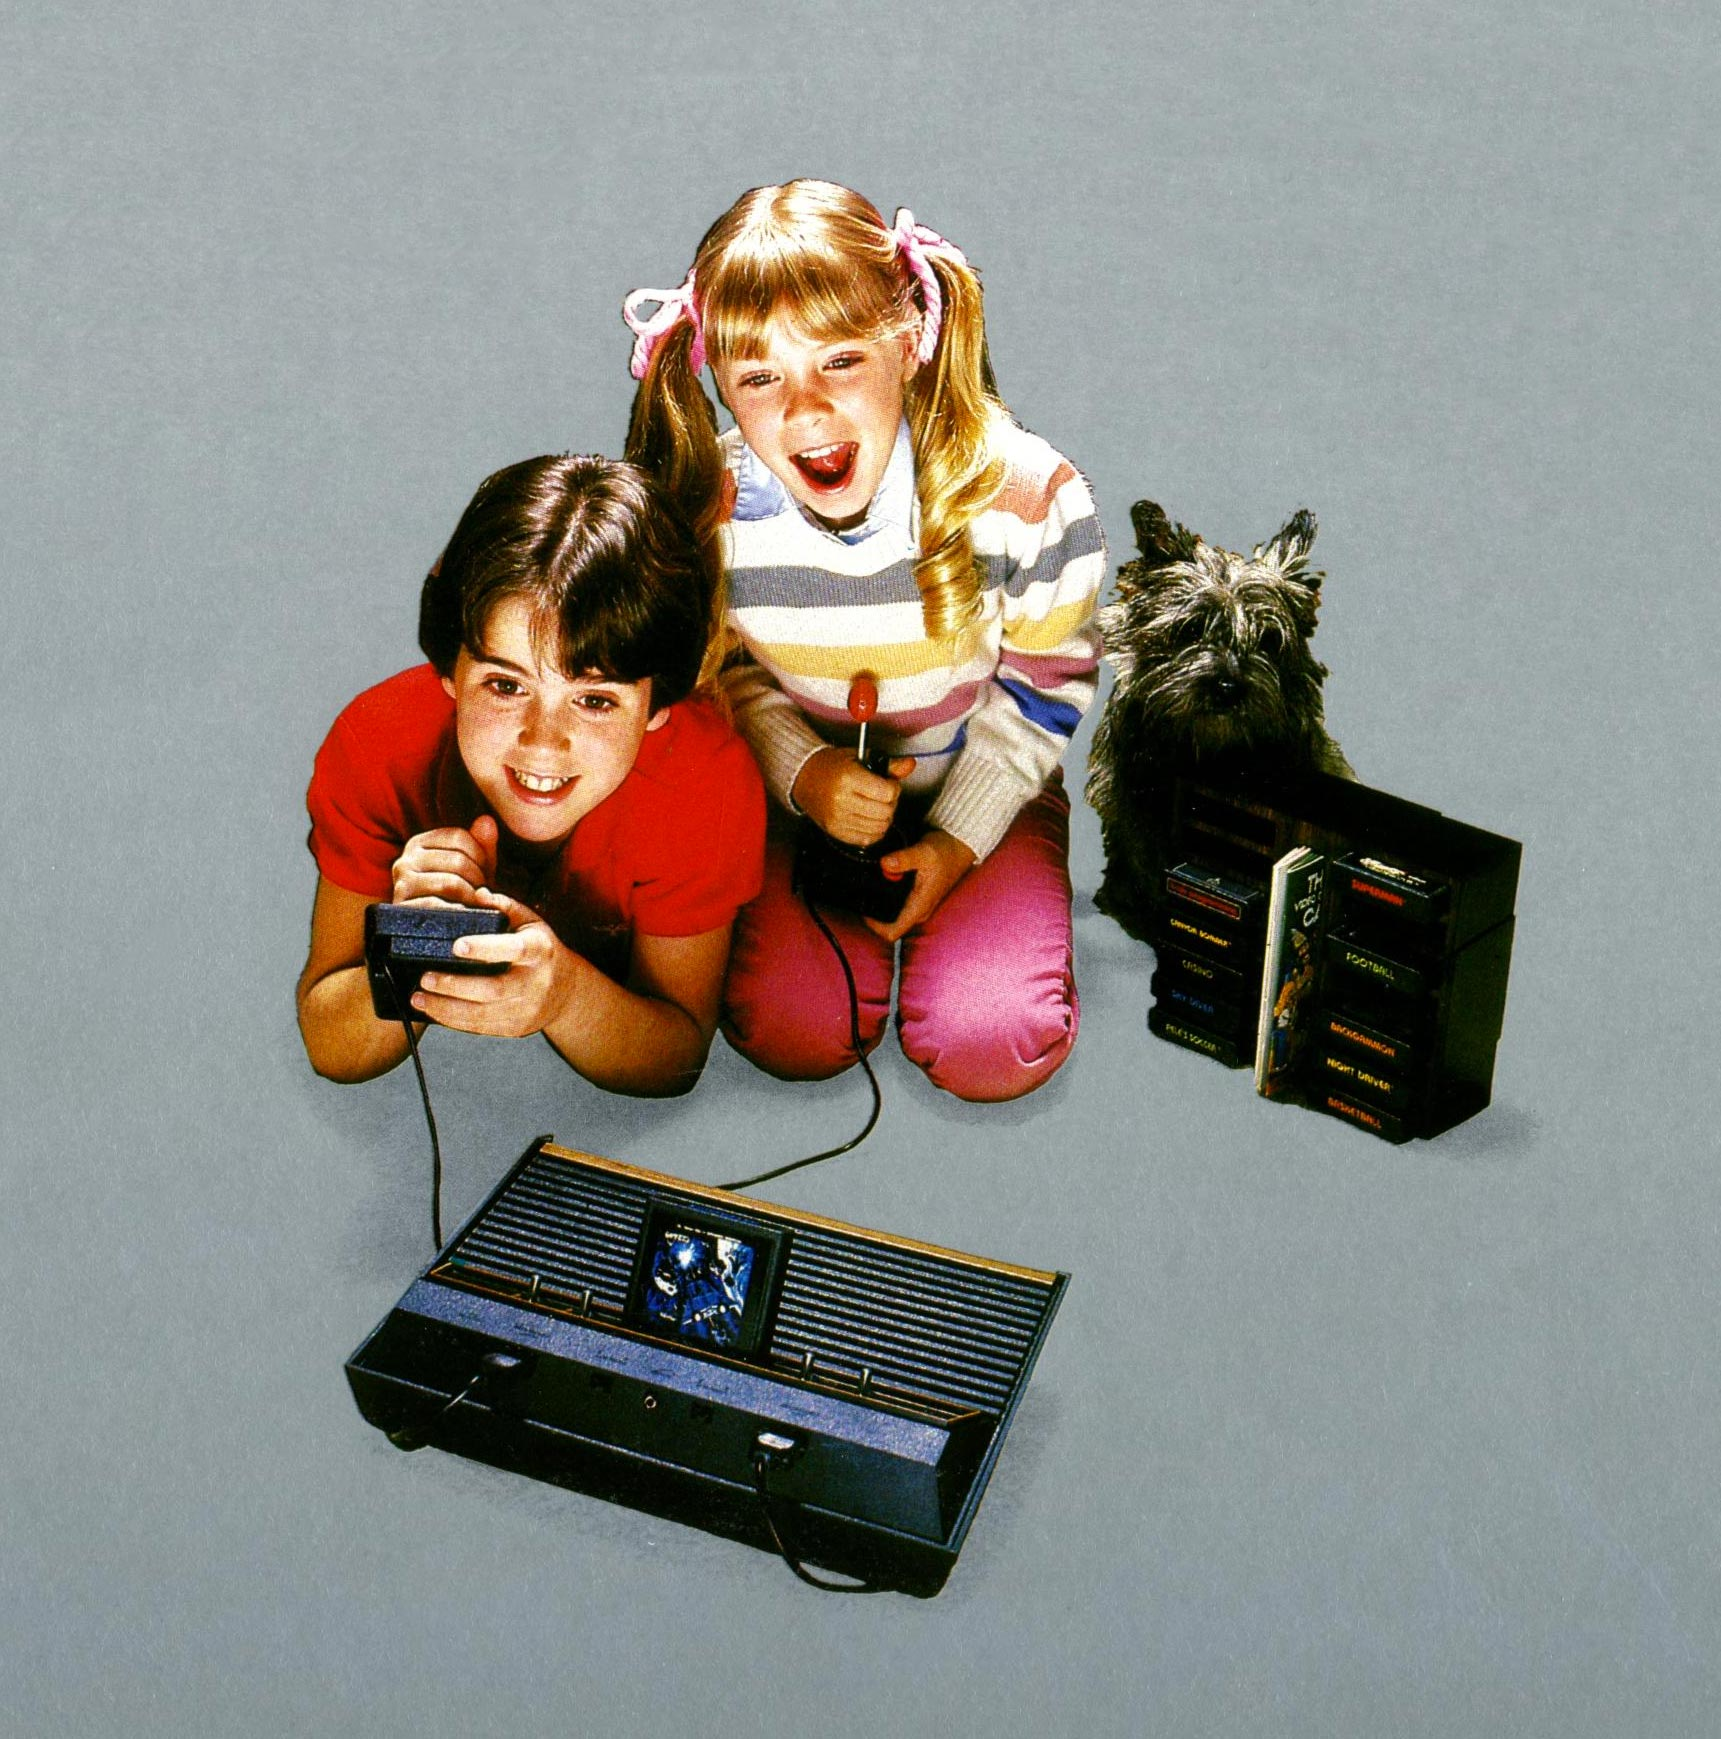 Kids playing the Atari 2600, a home video game console